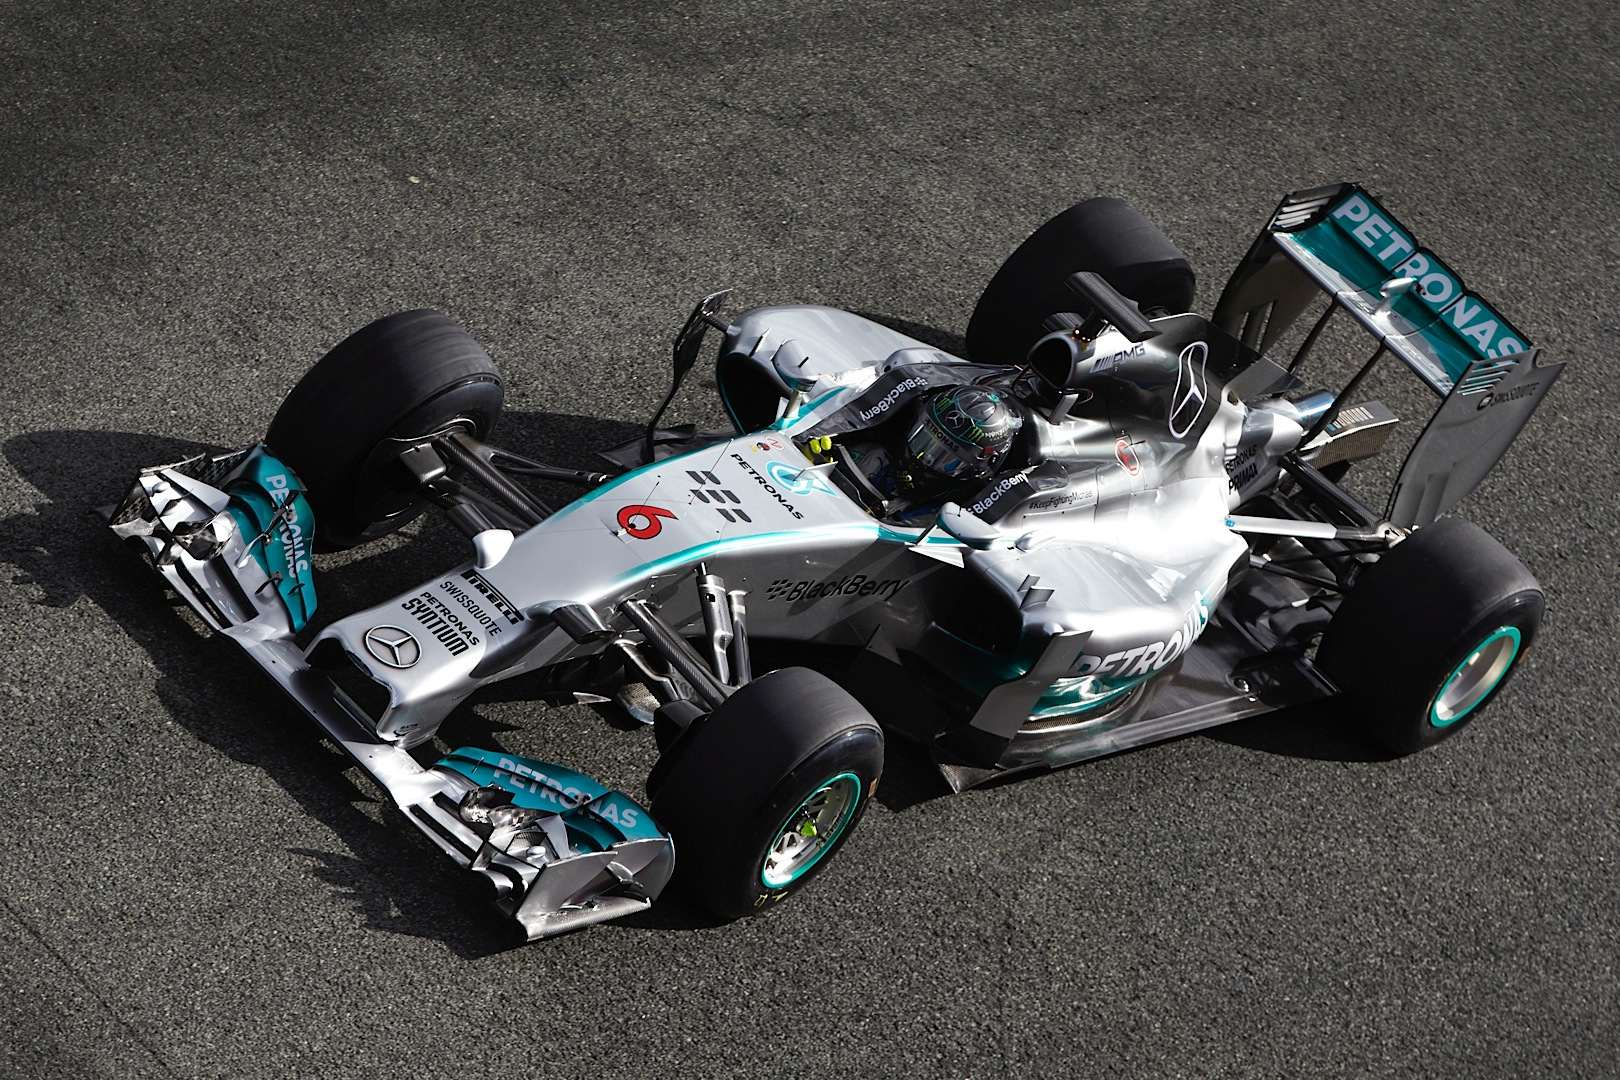 mercedes amg petronas concludes day three of testing at jerez autoevolution. Black Bedroom Furniture Sets. Home Design Ideas